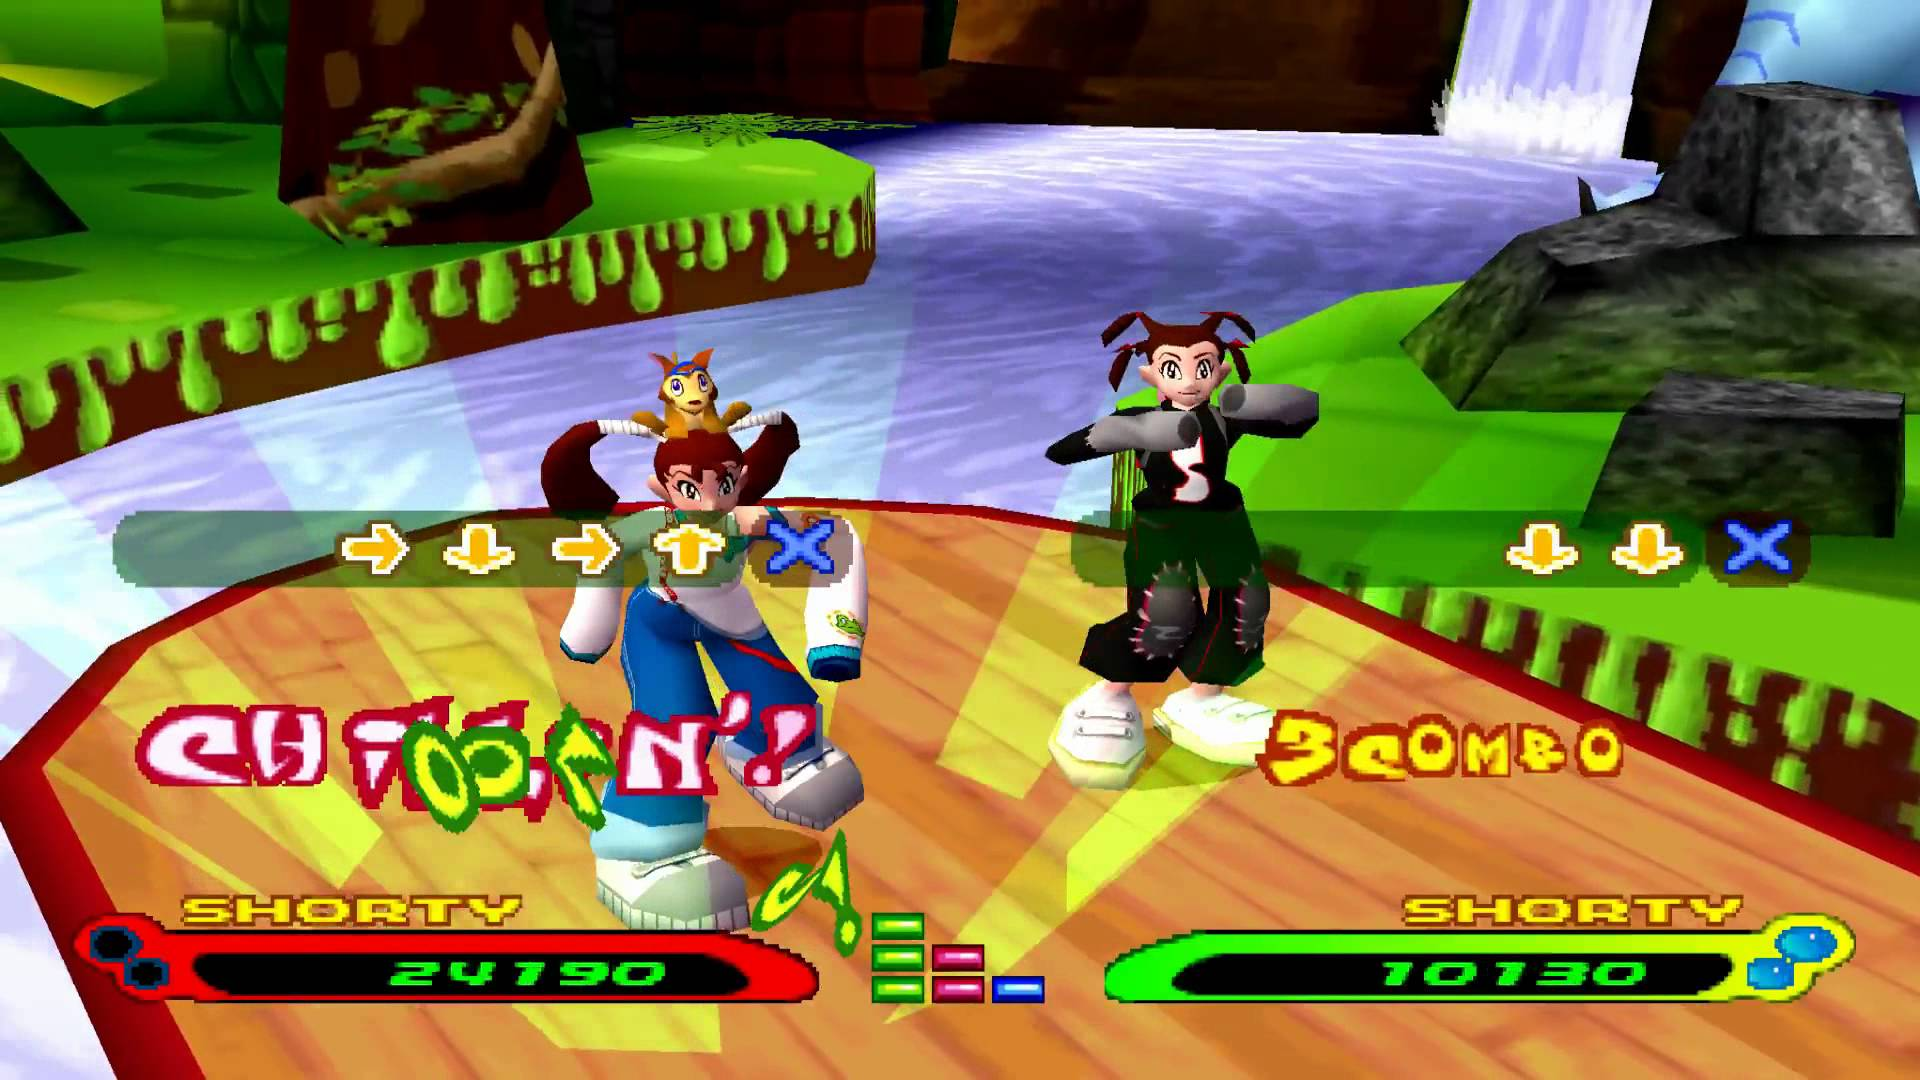 Two feminine figures dance on a wooden platform beside a river. The game overlay shows a series of game buttons, a score for each figure, and the word 'combo'.